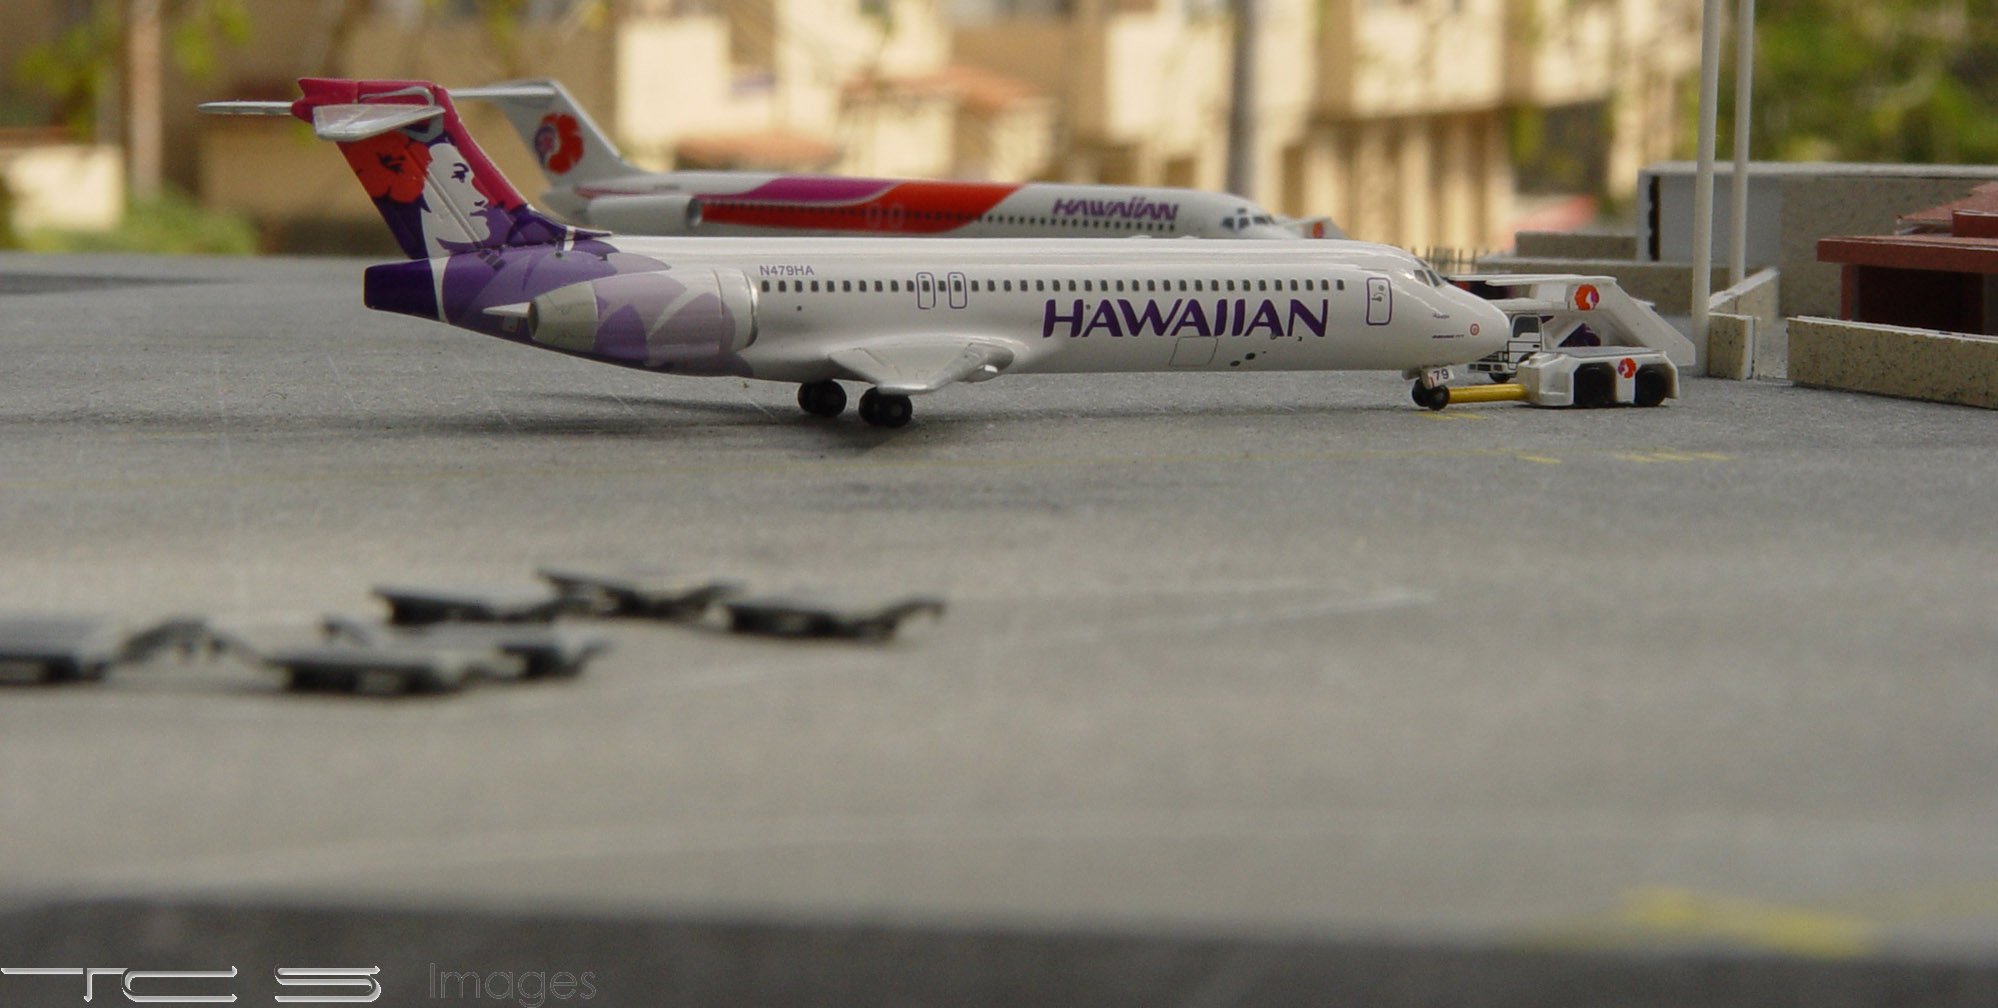 Hawaiian 717-22A